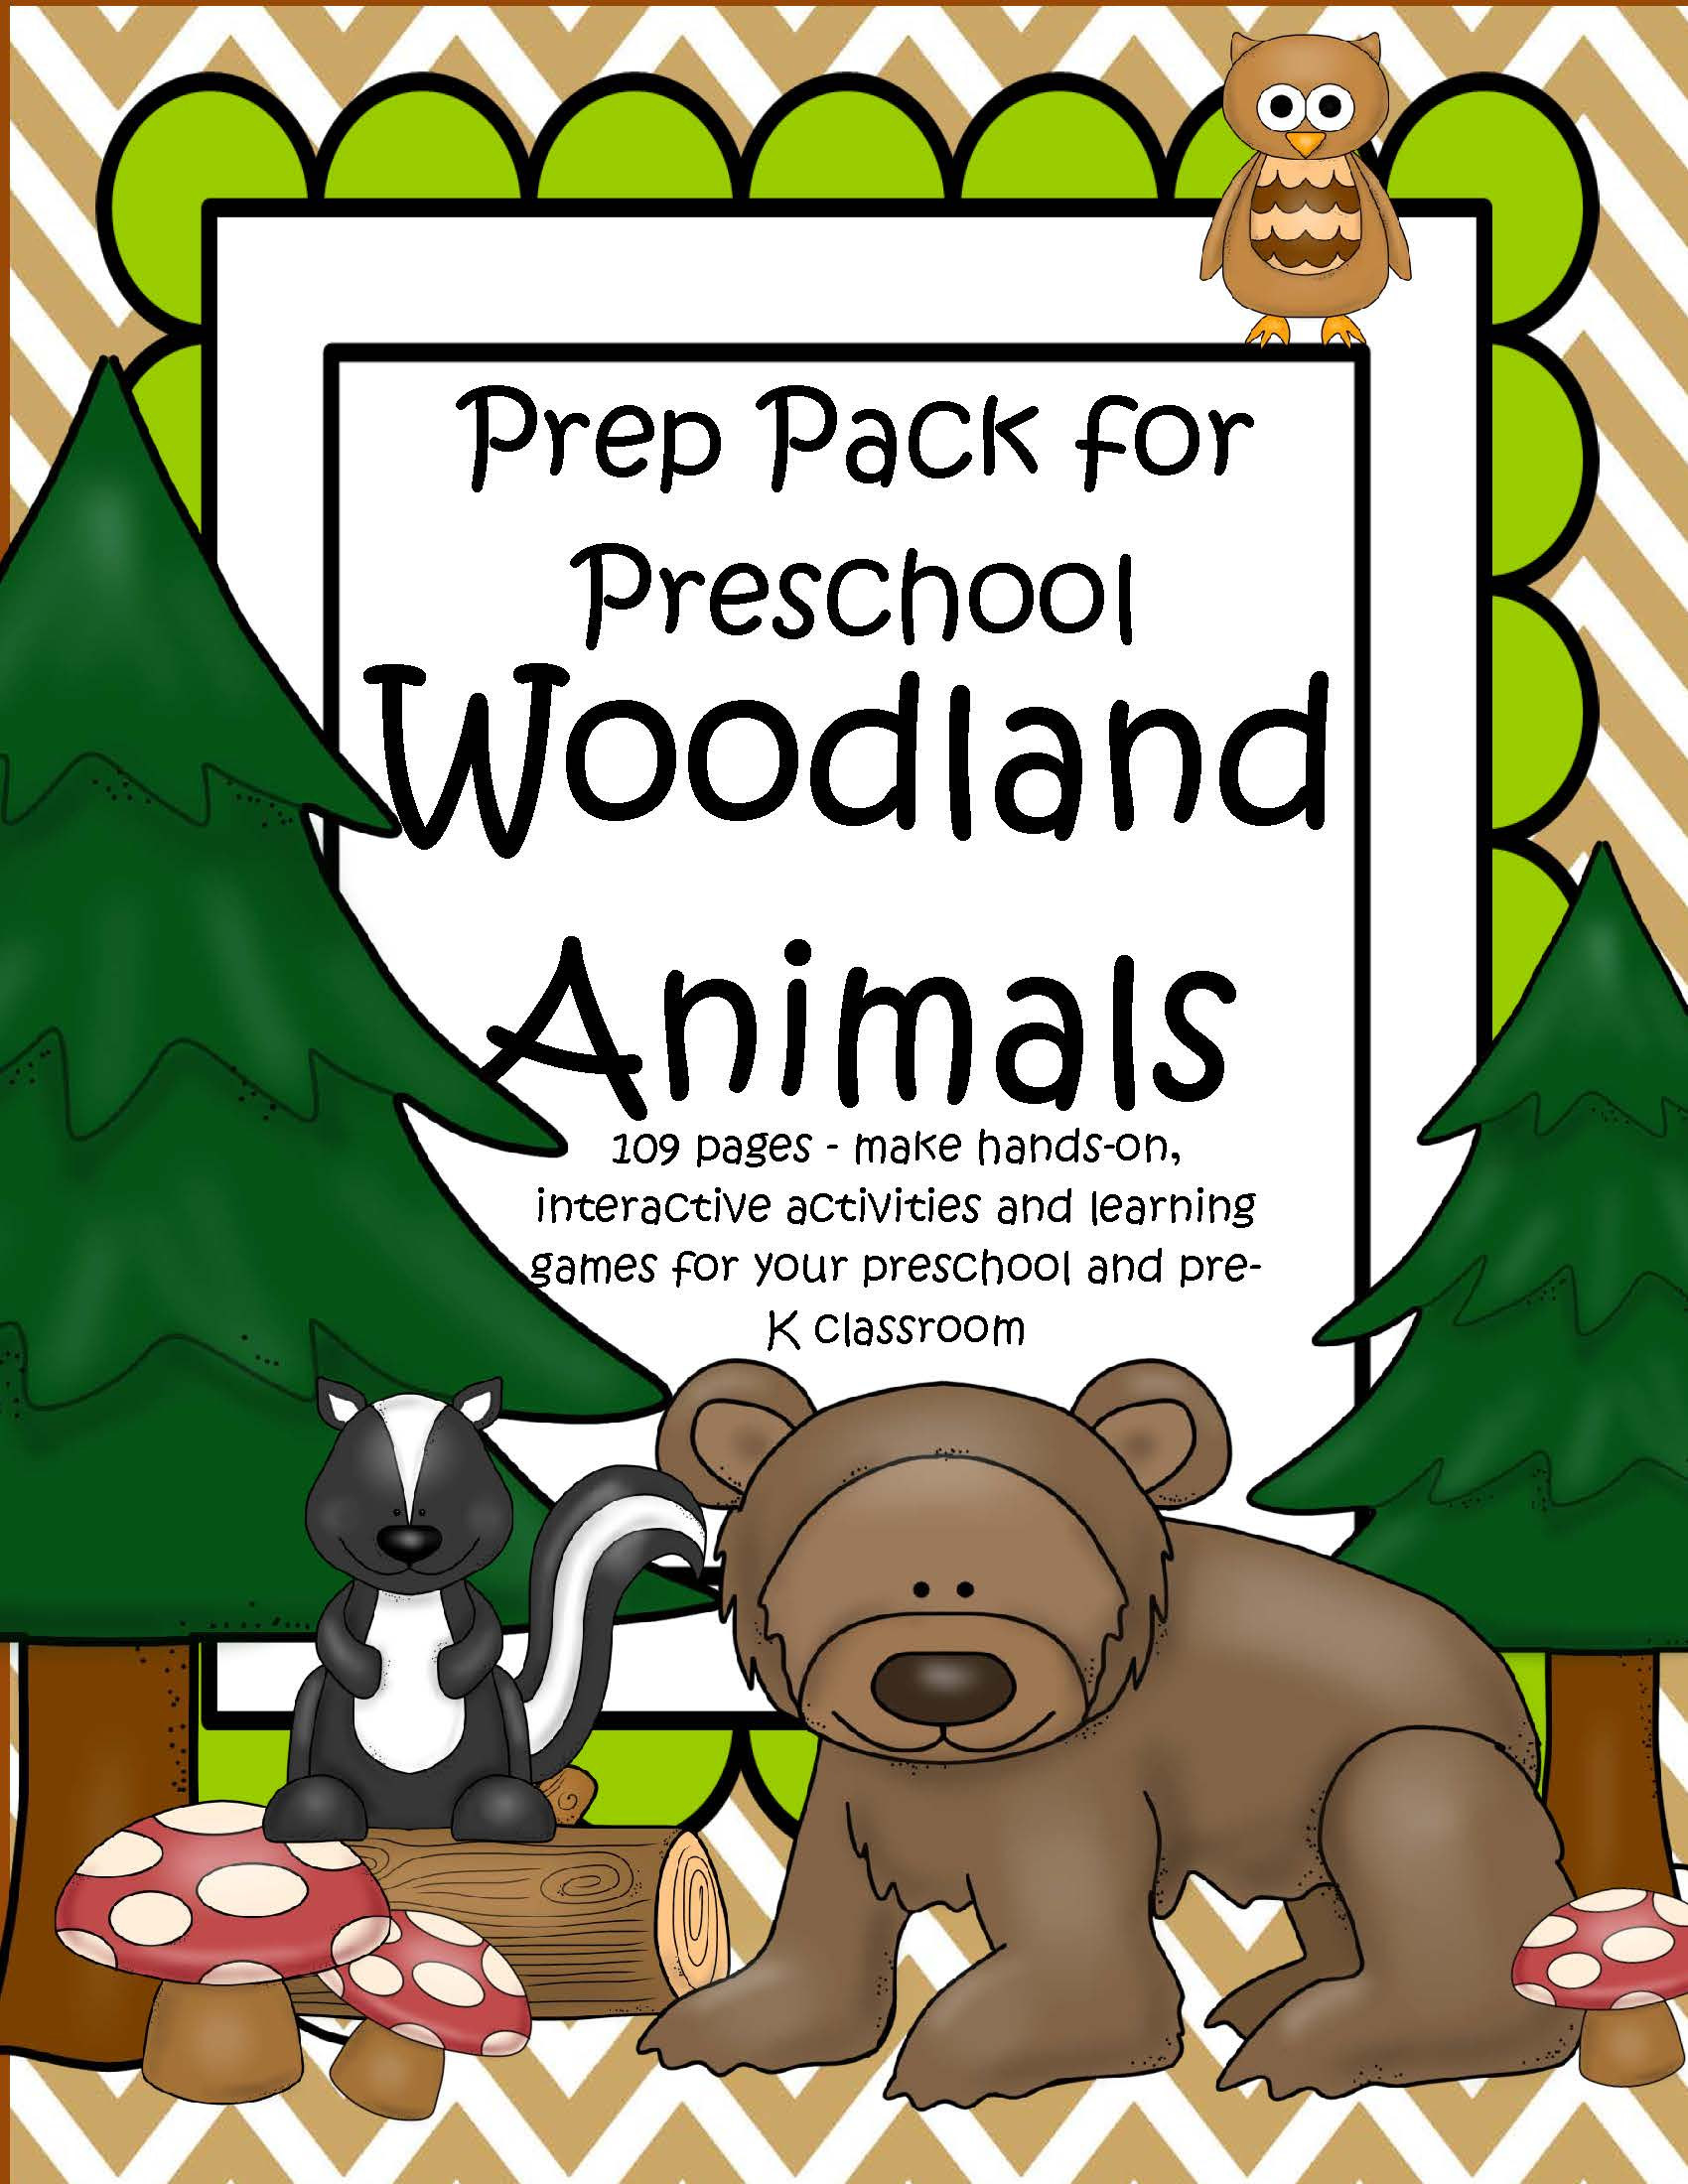 Woodland Forest Animals Prep Pack For Preschool